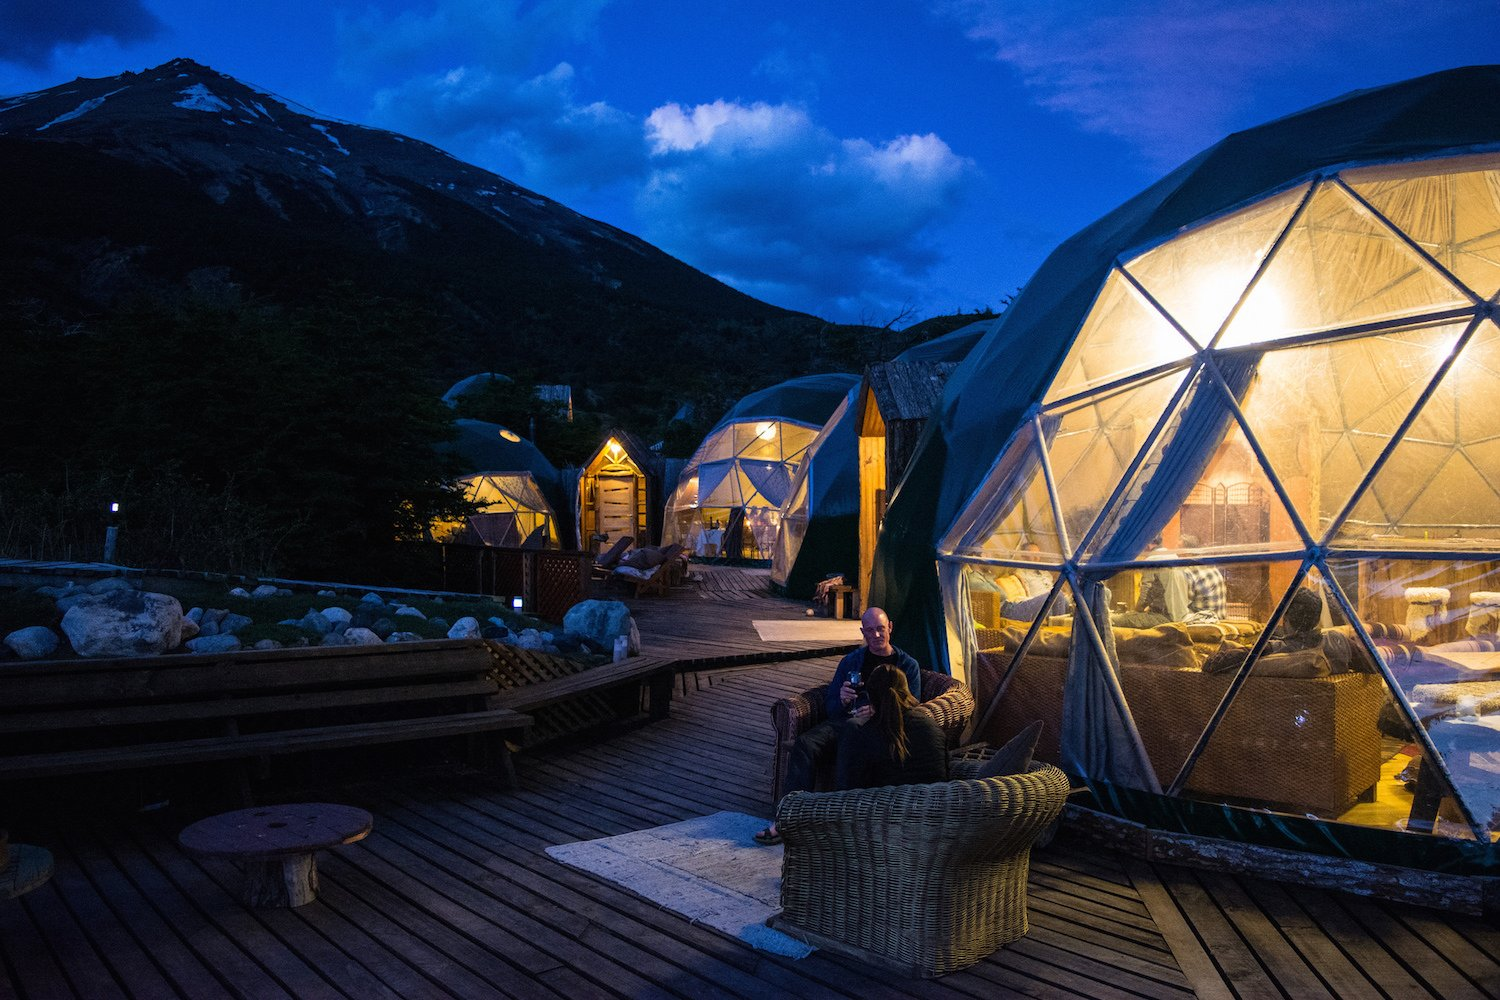 Outdoor, Decking Patio, Porch, Deck, Hardscapes, Large Patio, Porch, Deck, Wood Patio, Porch, Deck, Shrubs, Walkways, Boulders, Trees, Field, Woodland, and Slope  Photos from Soak Up the Magic of Patagonia at This Eco-Friendly Geodesic Dome Retreat